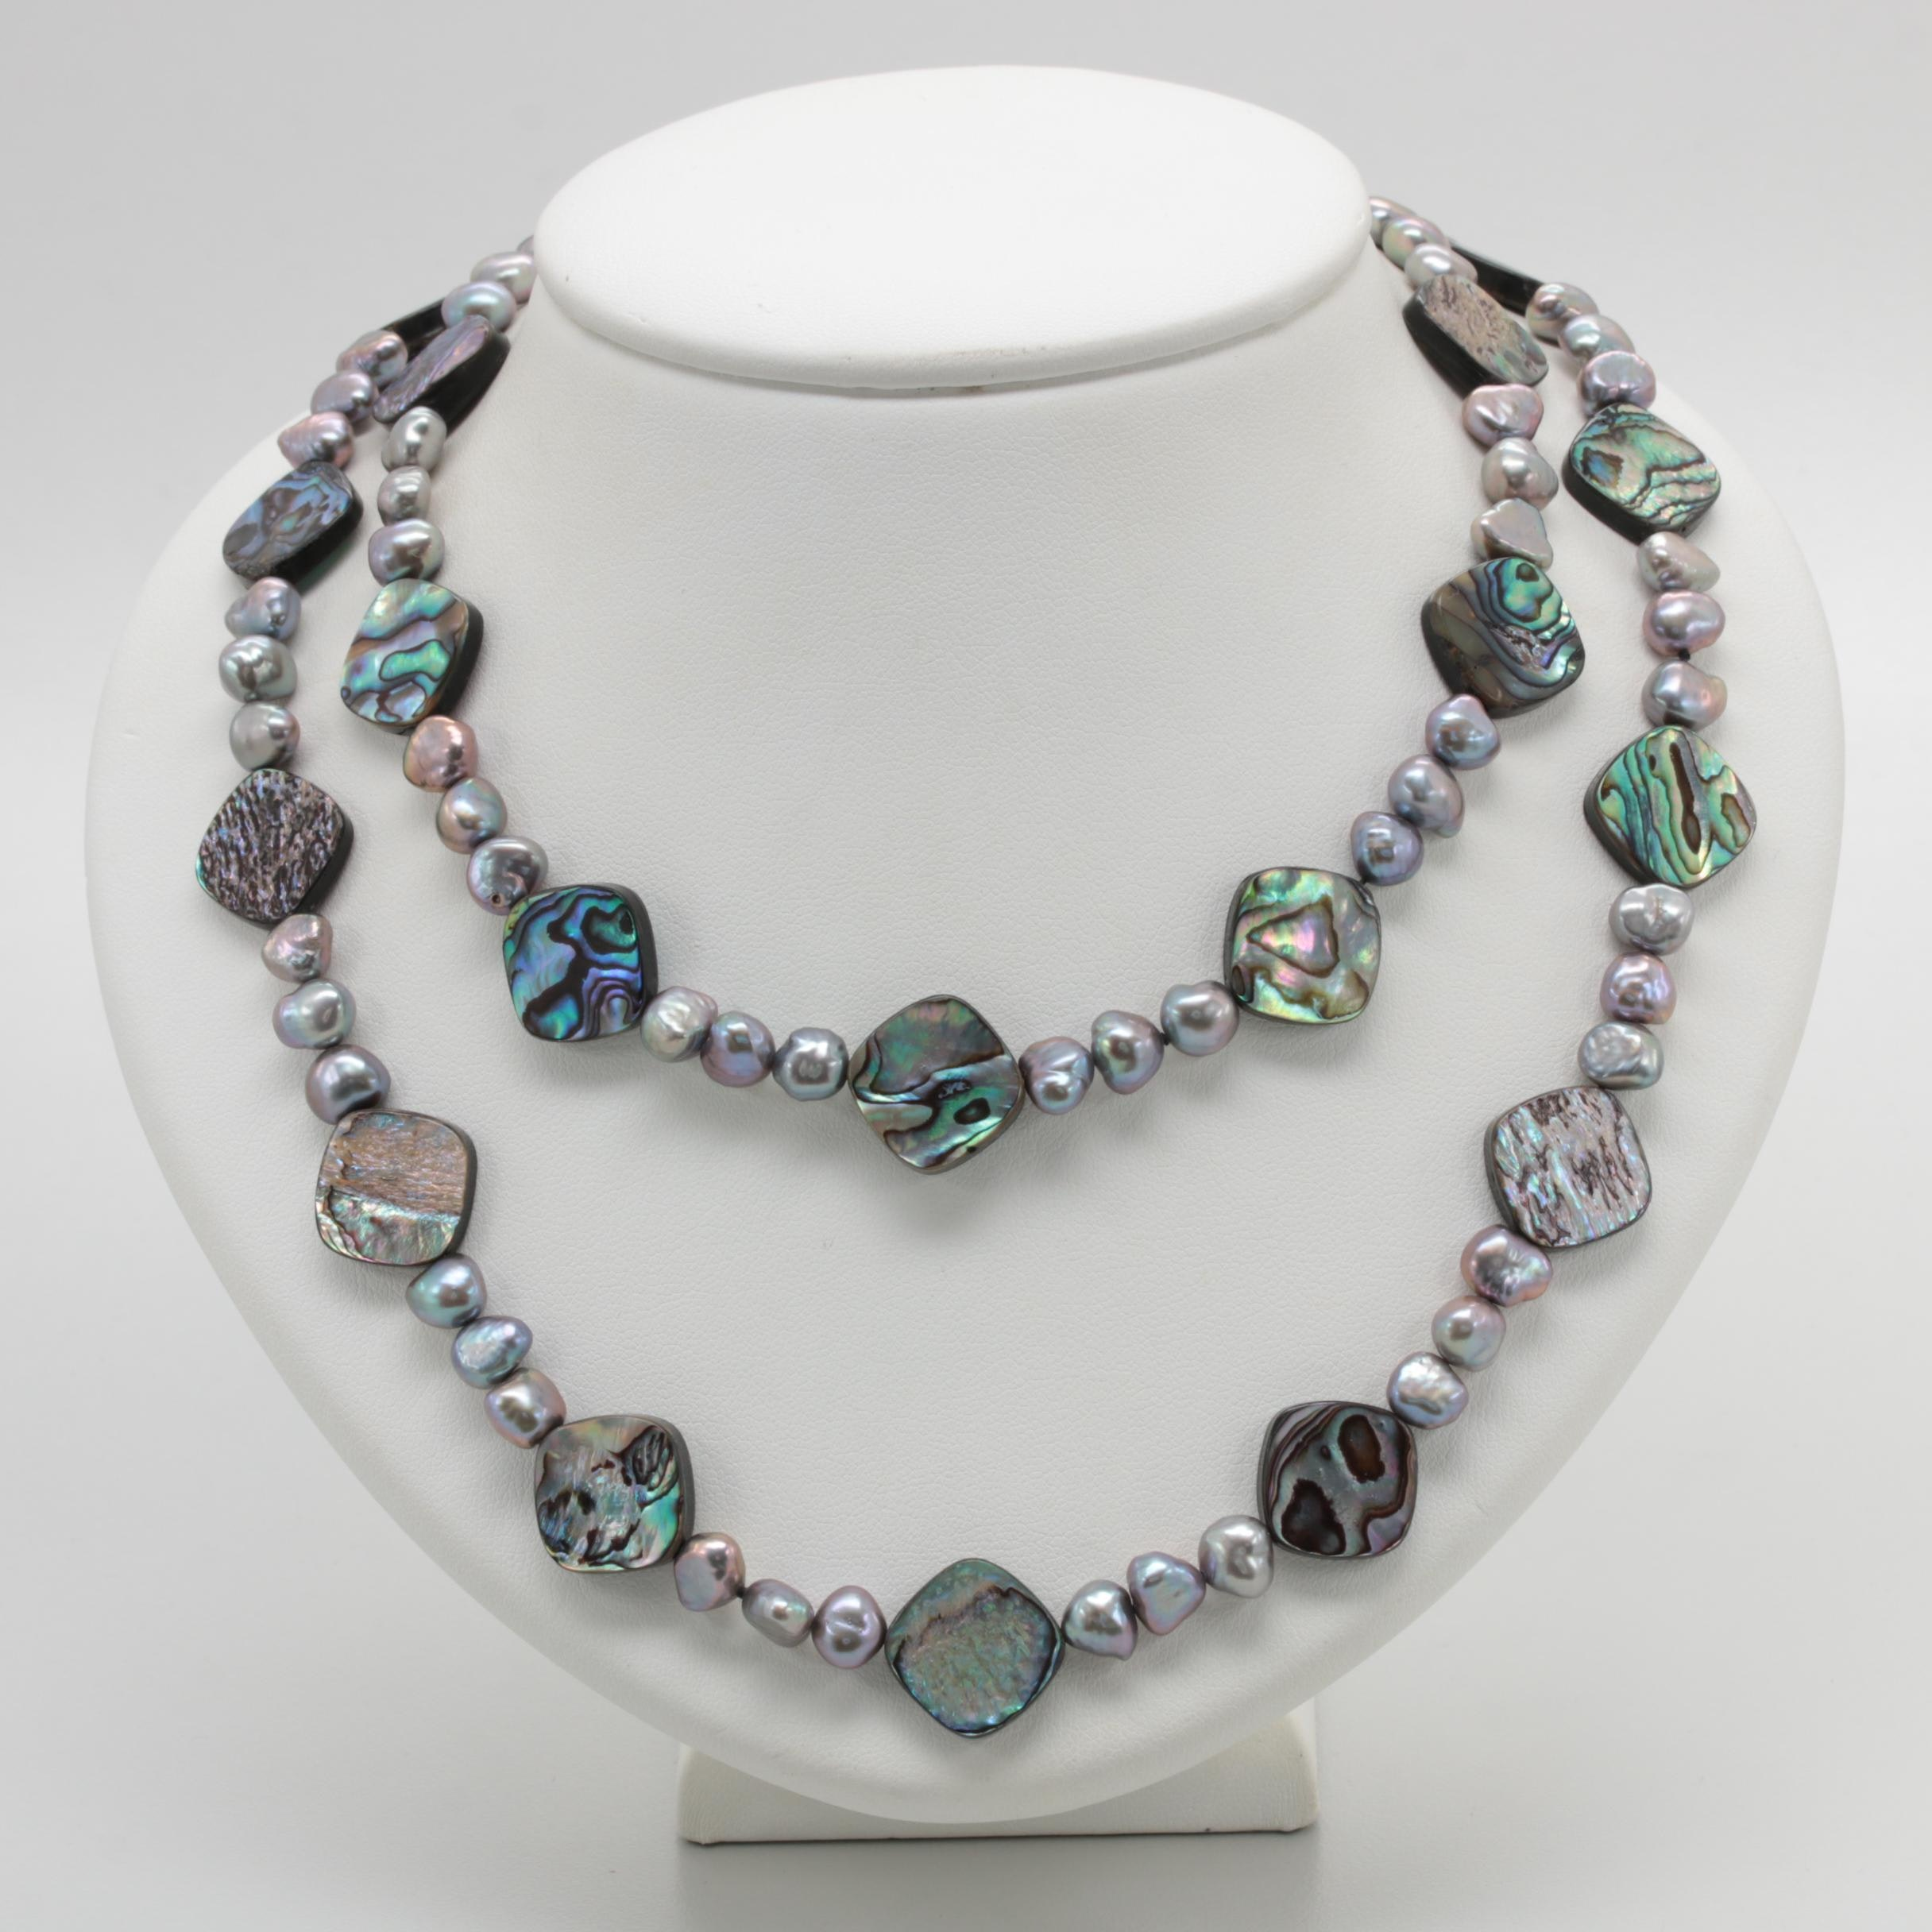 14K Yellow Gold Abalone and Cultured Pearl Necklace